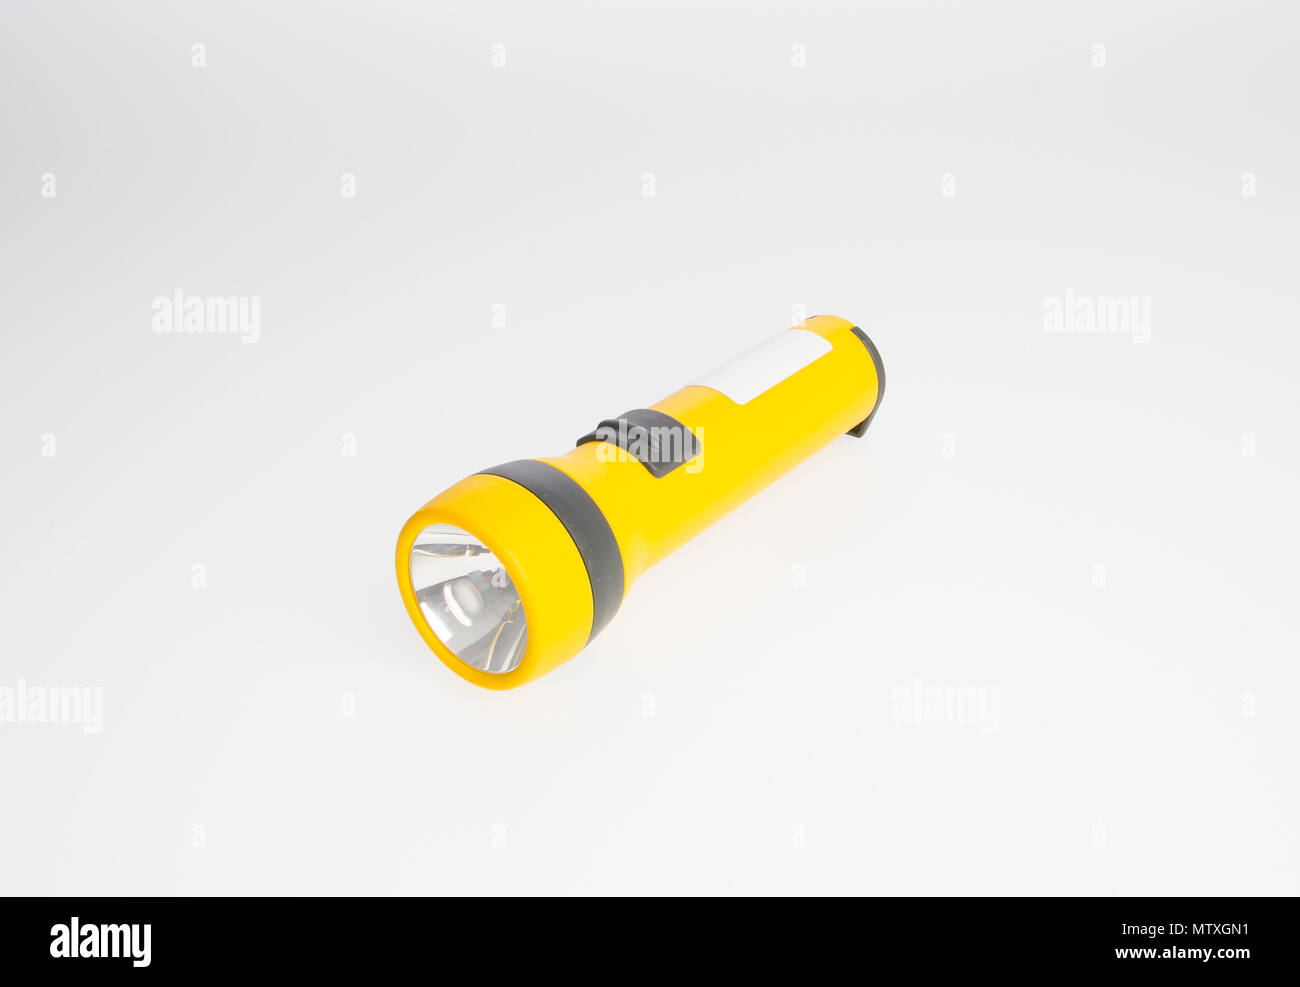 Flash Light or Light on a background - Stock Image